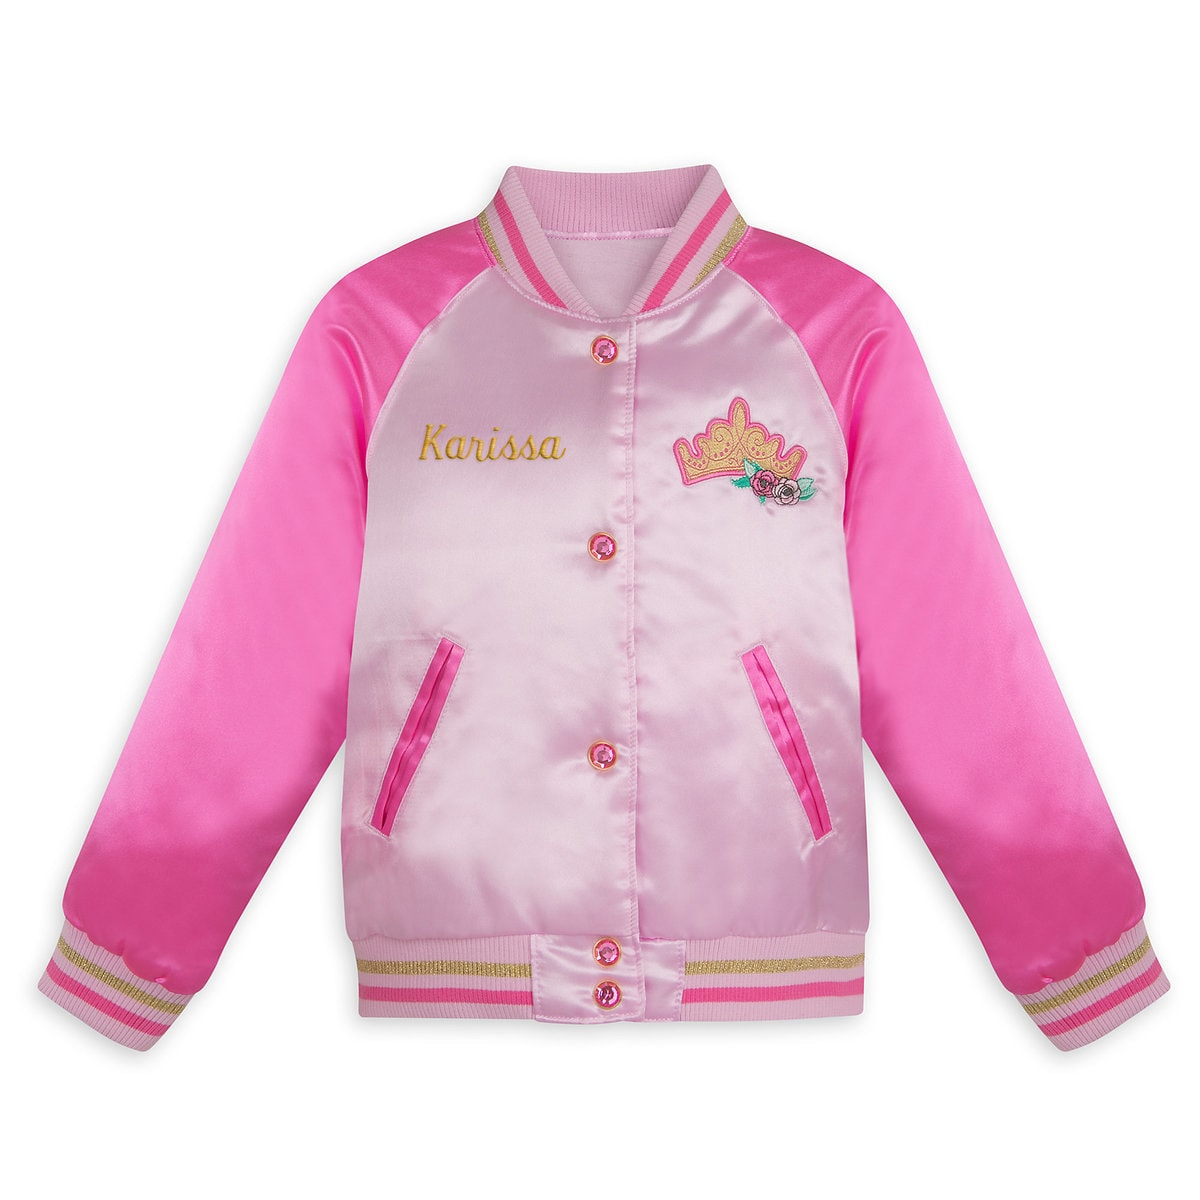 81a43f3a273 Product Image of Disney Princess Varsity Jacket for Girls - Personalizable    1